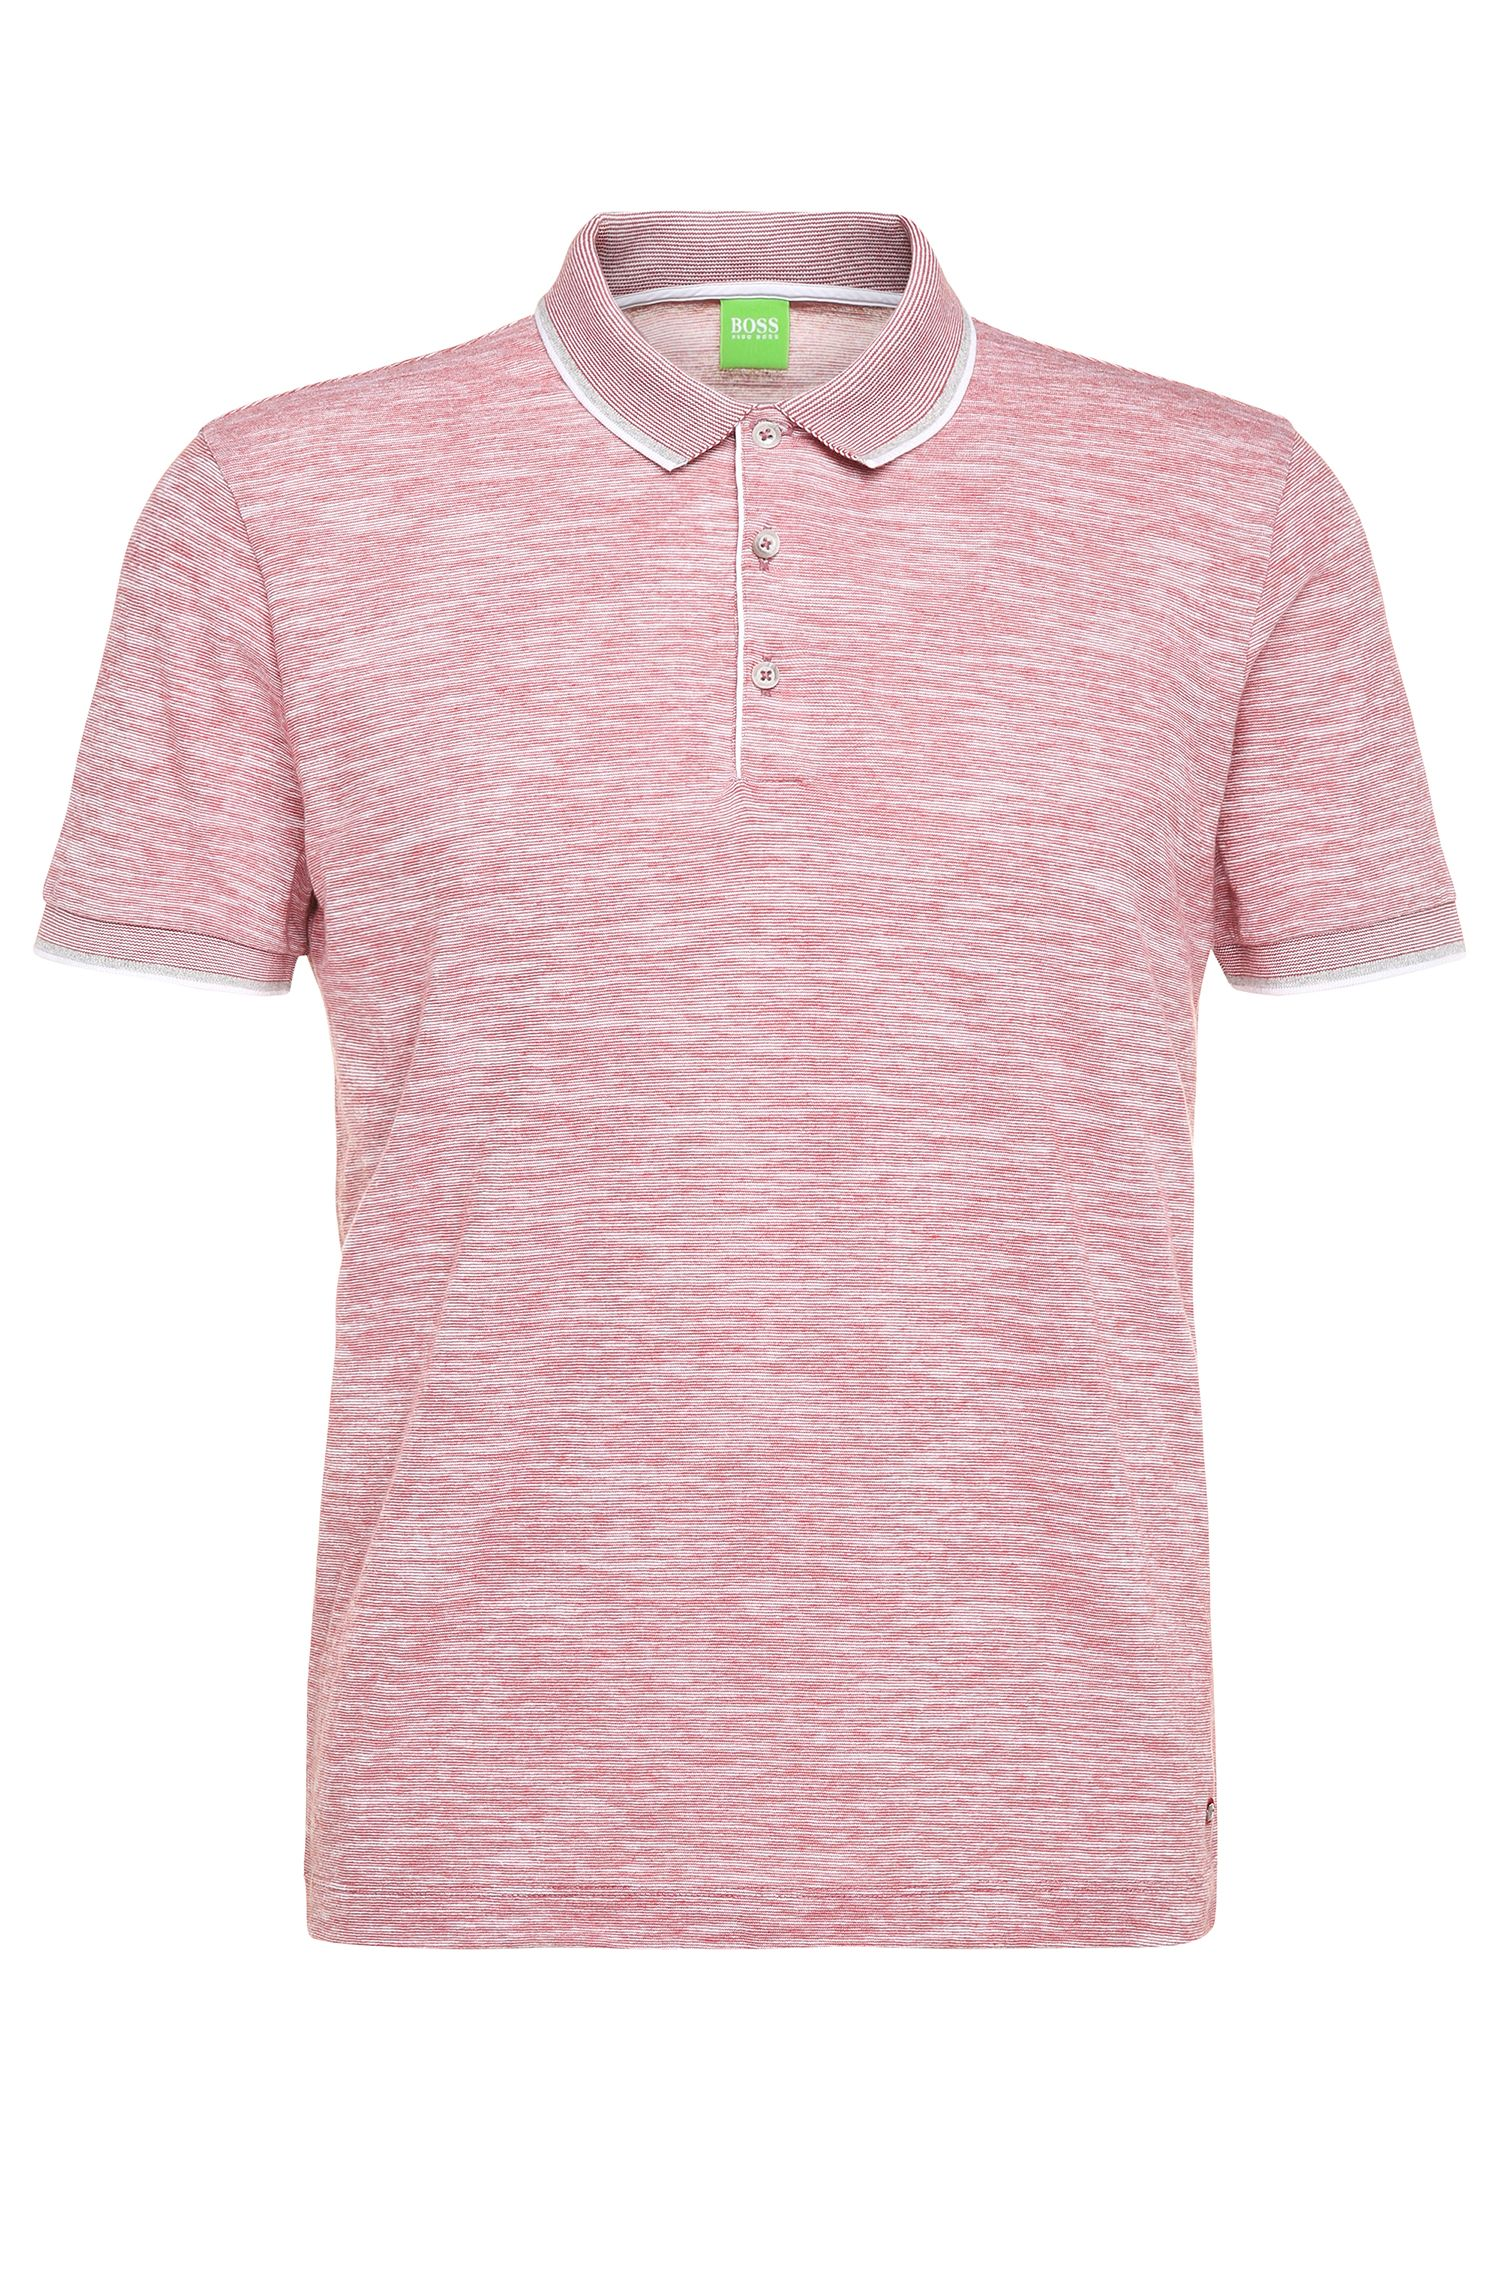 Slim-Fit Poloshirt aus Baumwoll-Mix in Melange-Optik: ´C-Padria`